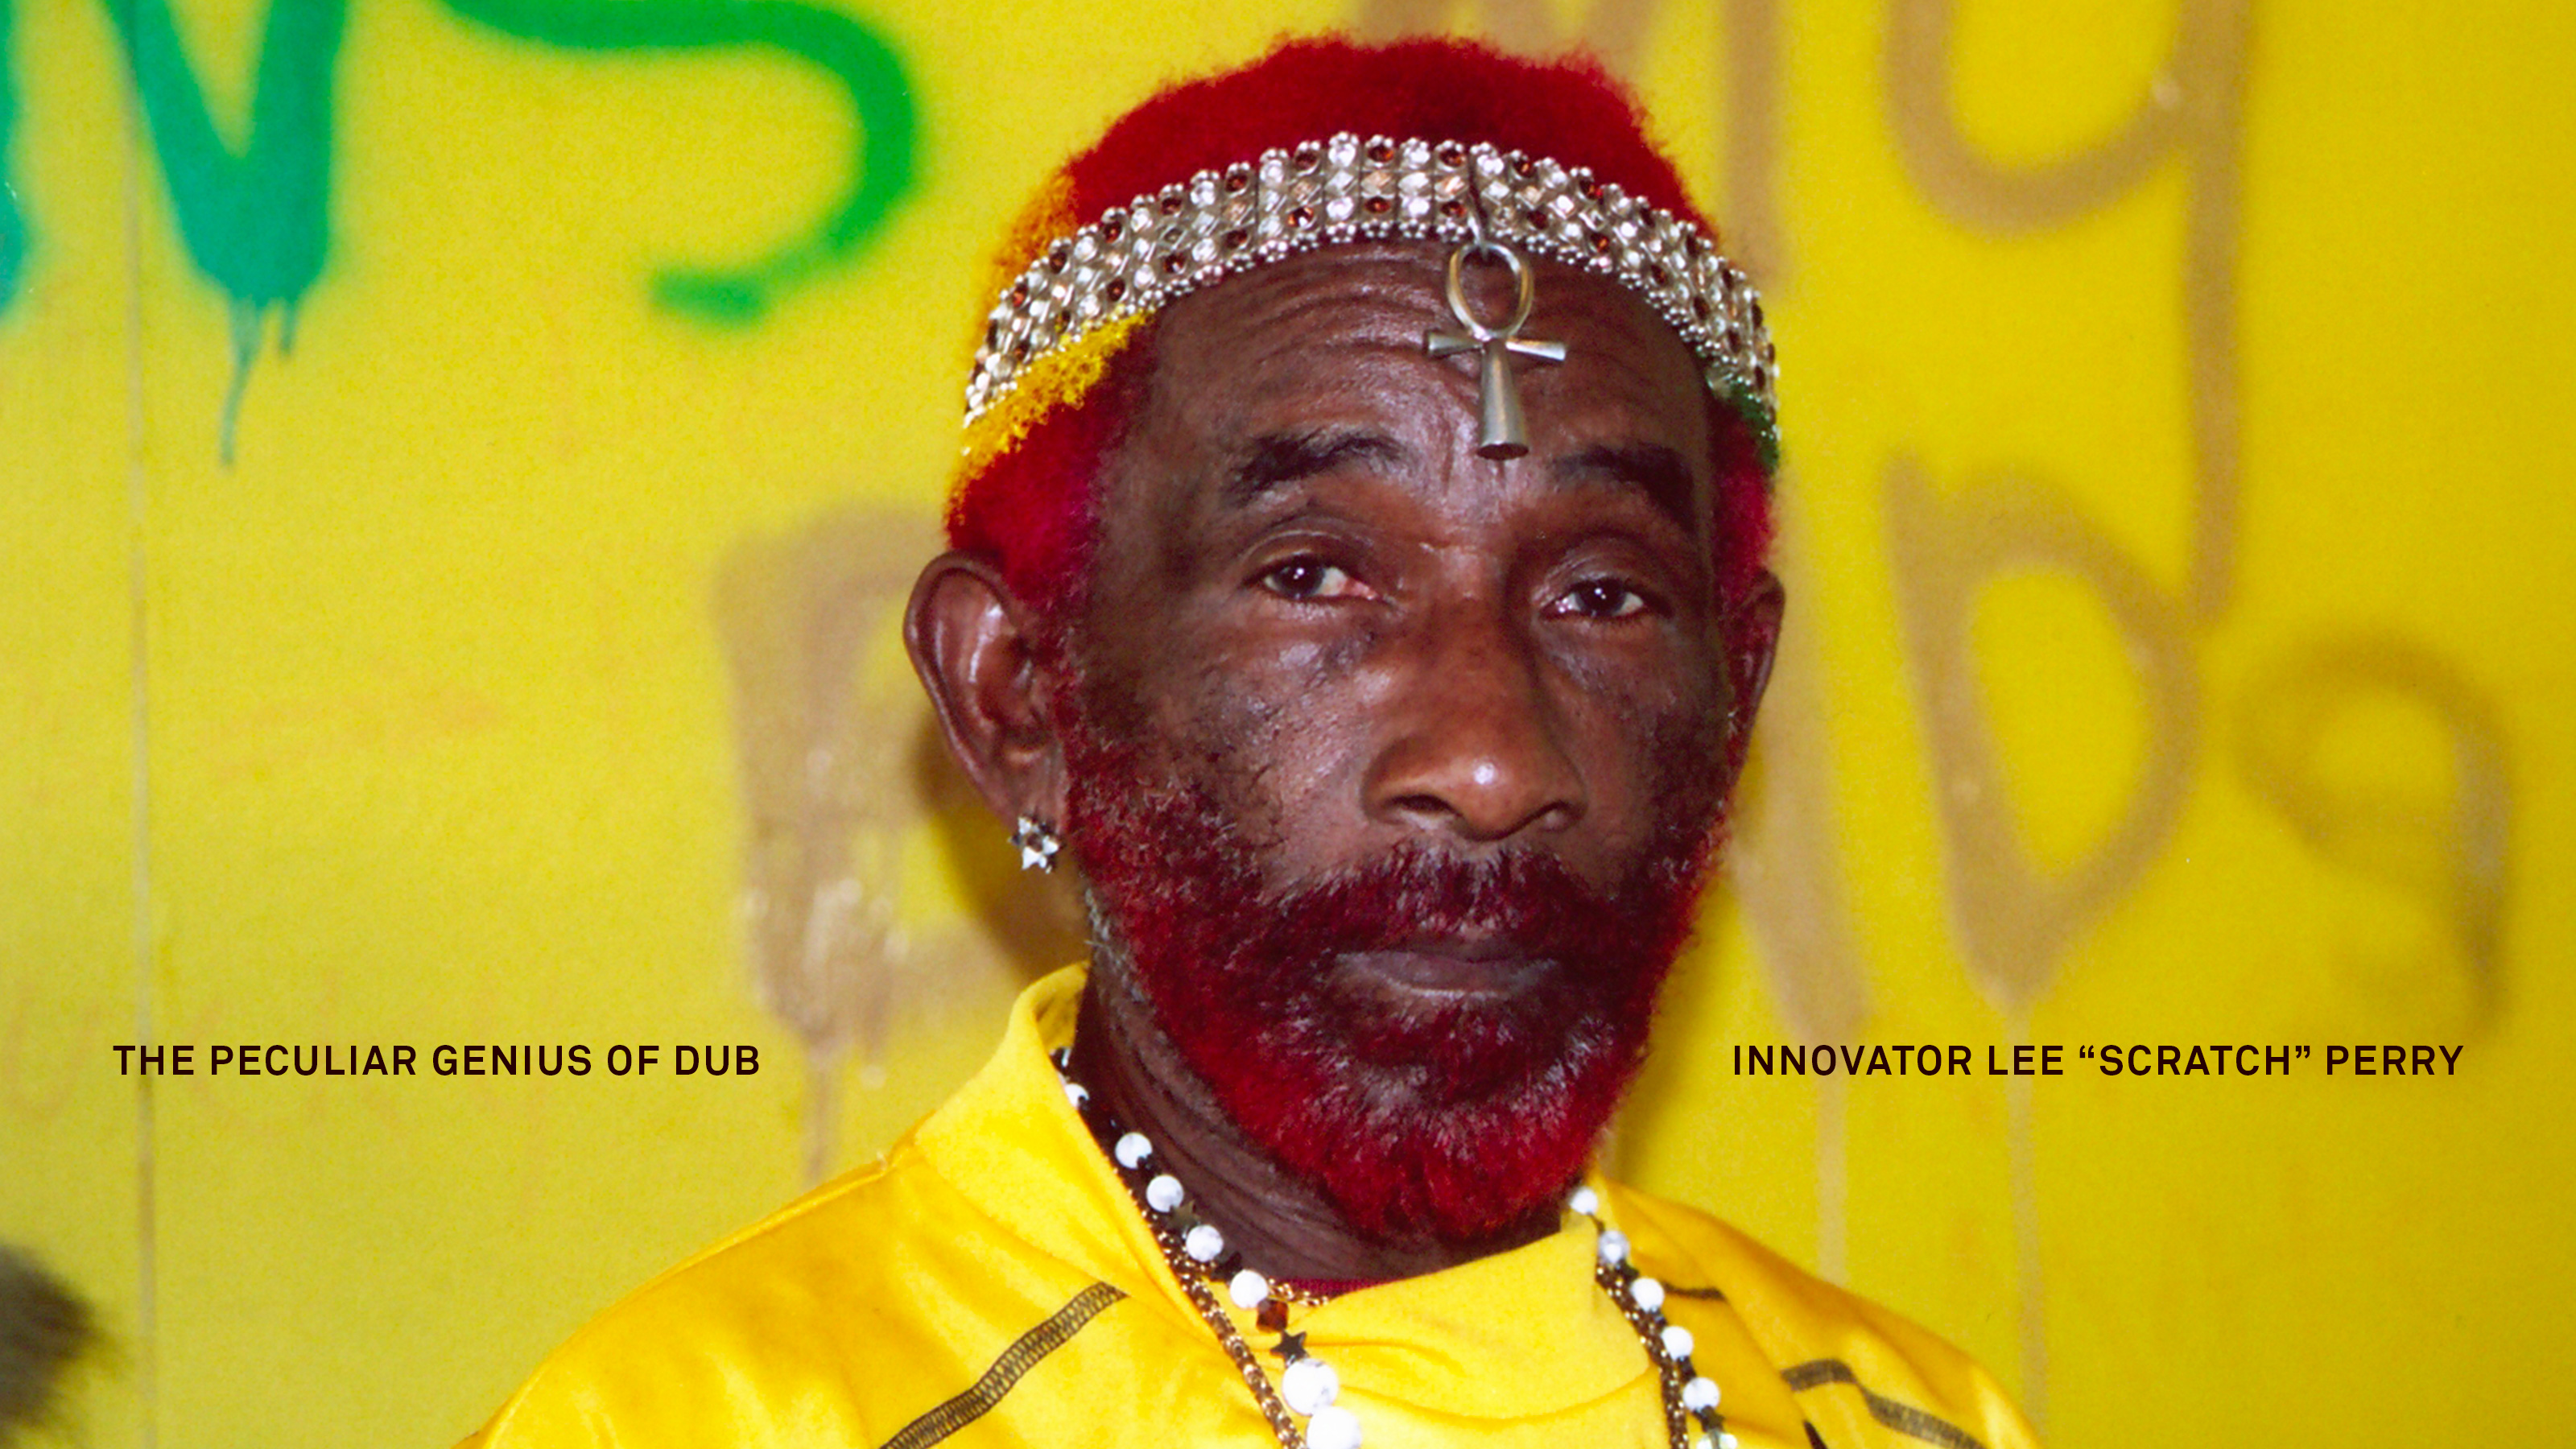 The Peculiar Genius of Dub Innovator Lee 'Scratch' Perry